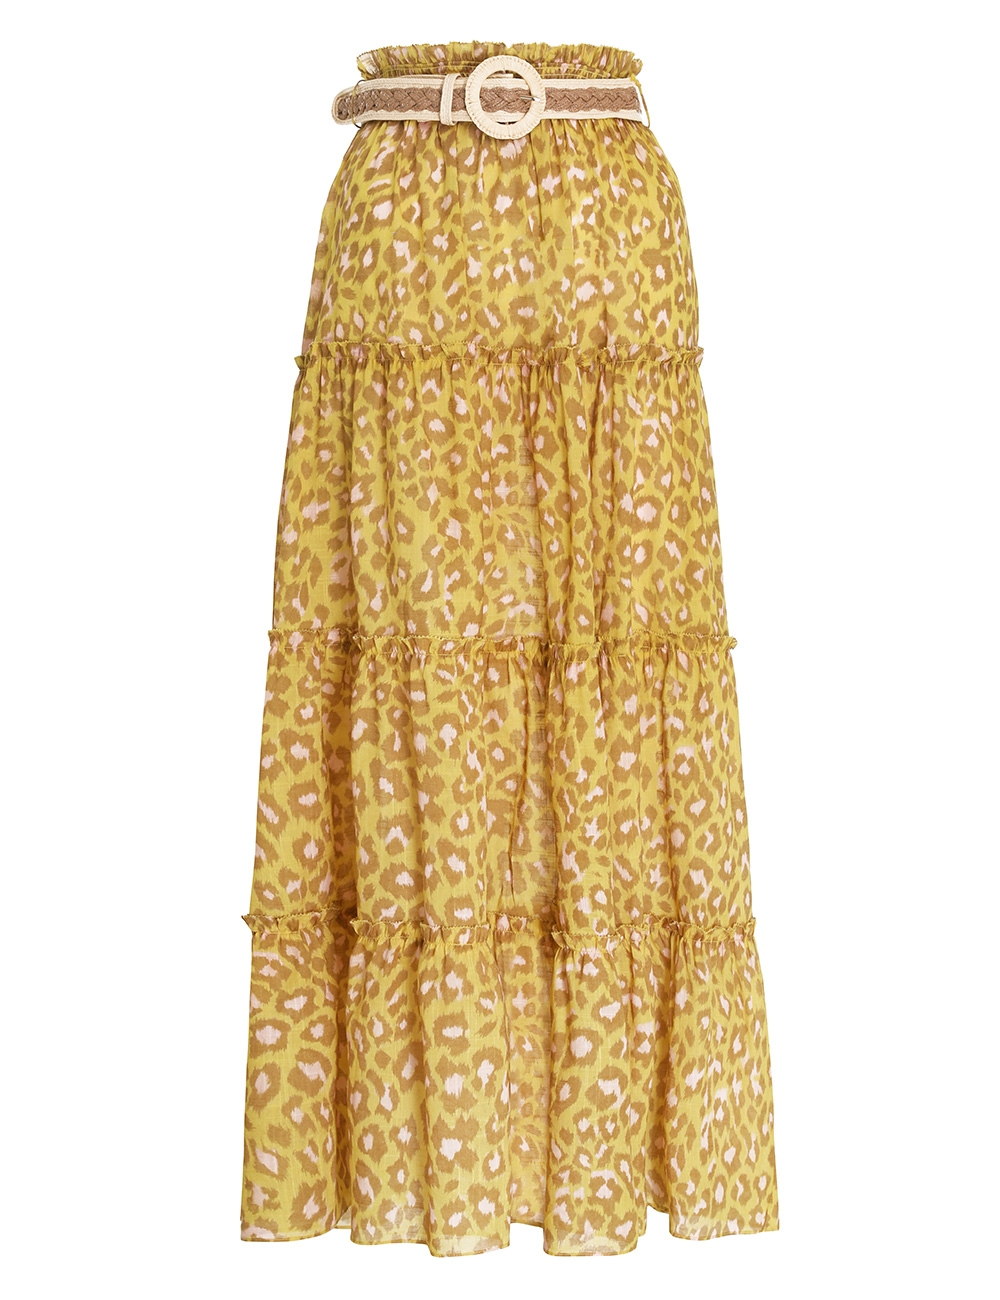 Carnaby Tiered Skirt